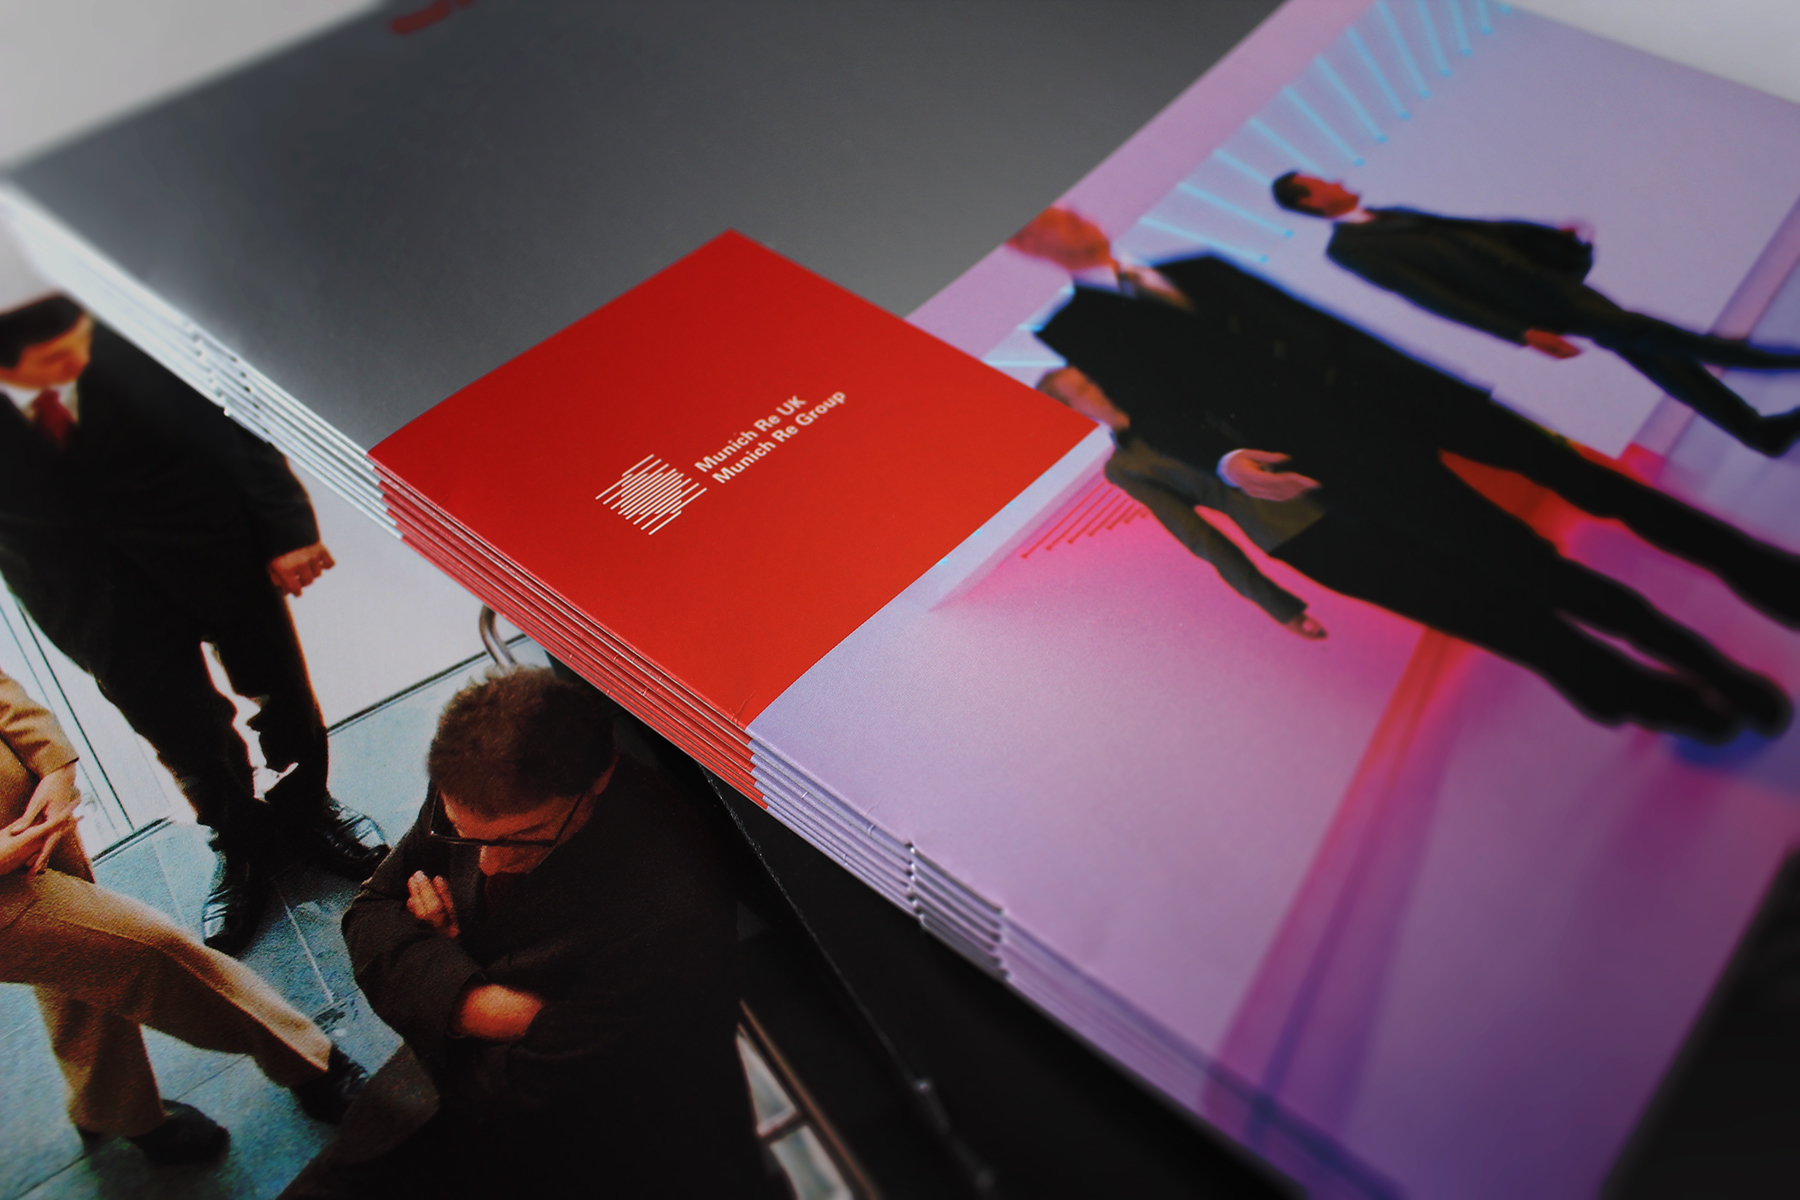 The Munich Re Graduate brochure featured dynamic imagery from the Munich HQ